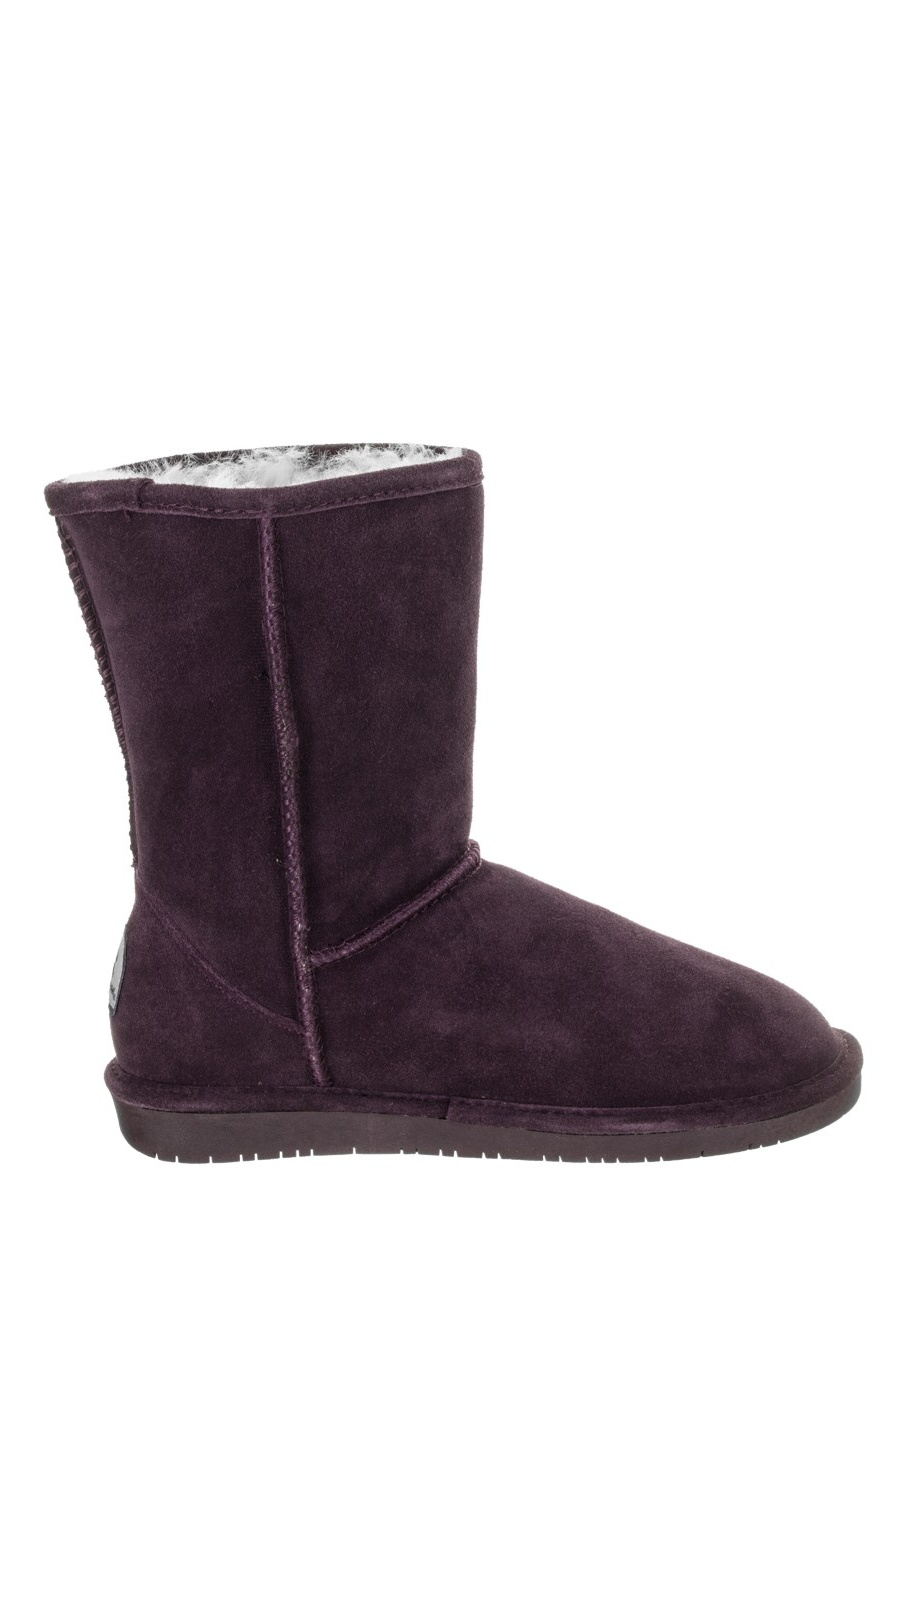 Bearpaw Women's Emma 8'' Boots Purple Suede Rubber 6 M